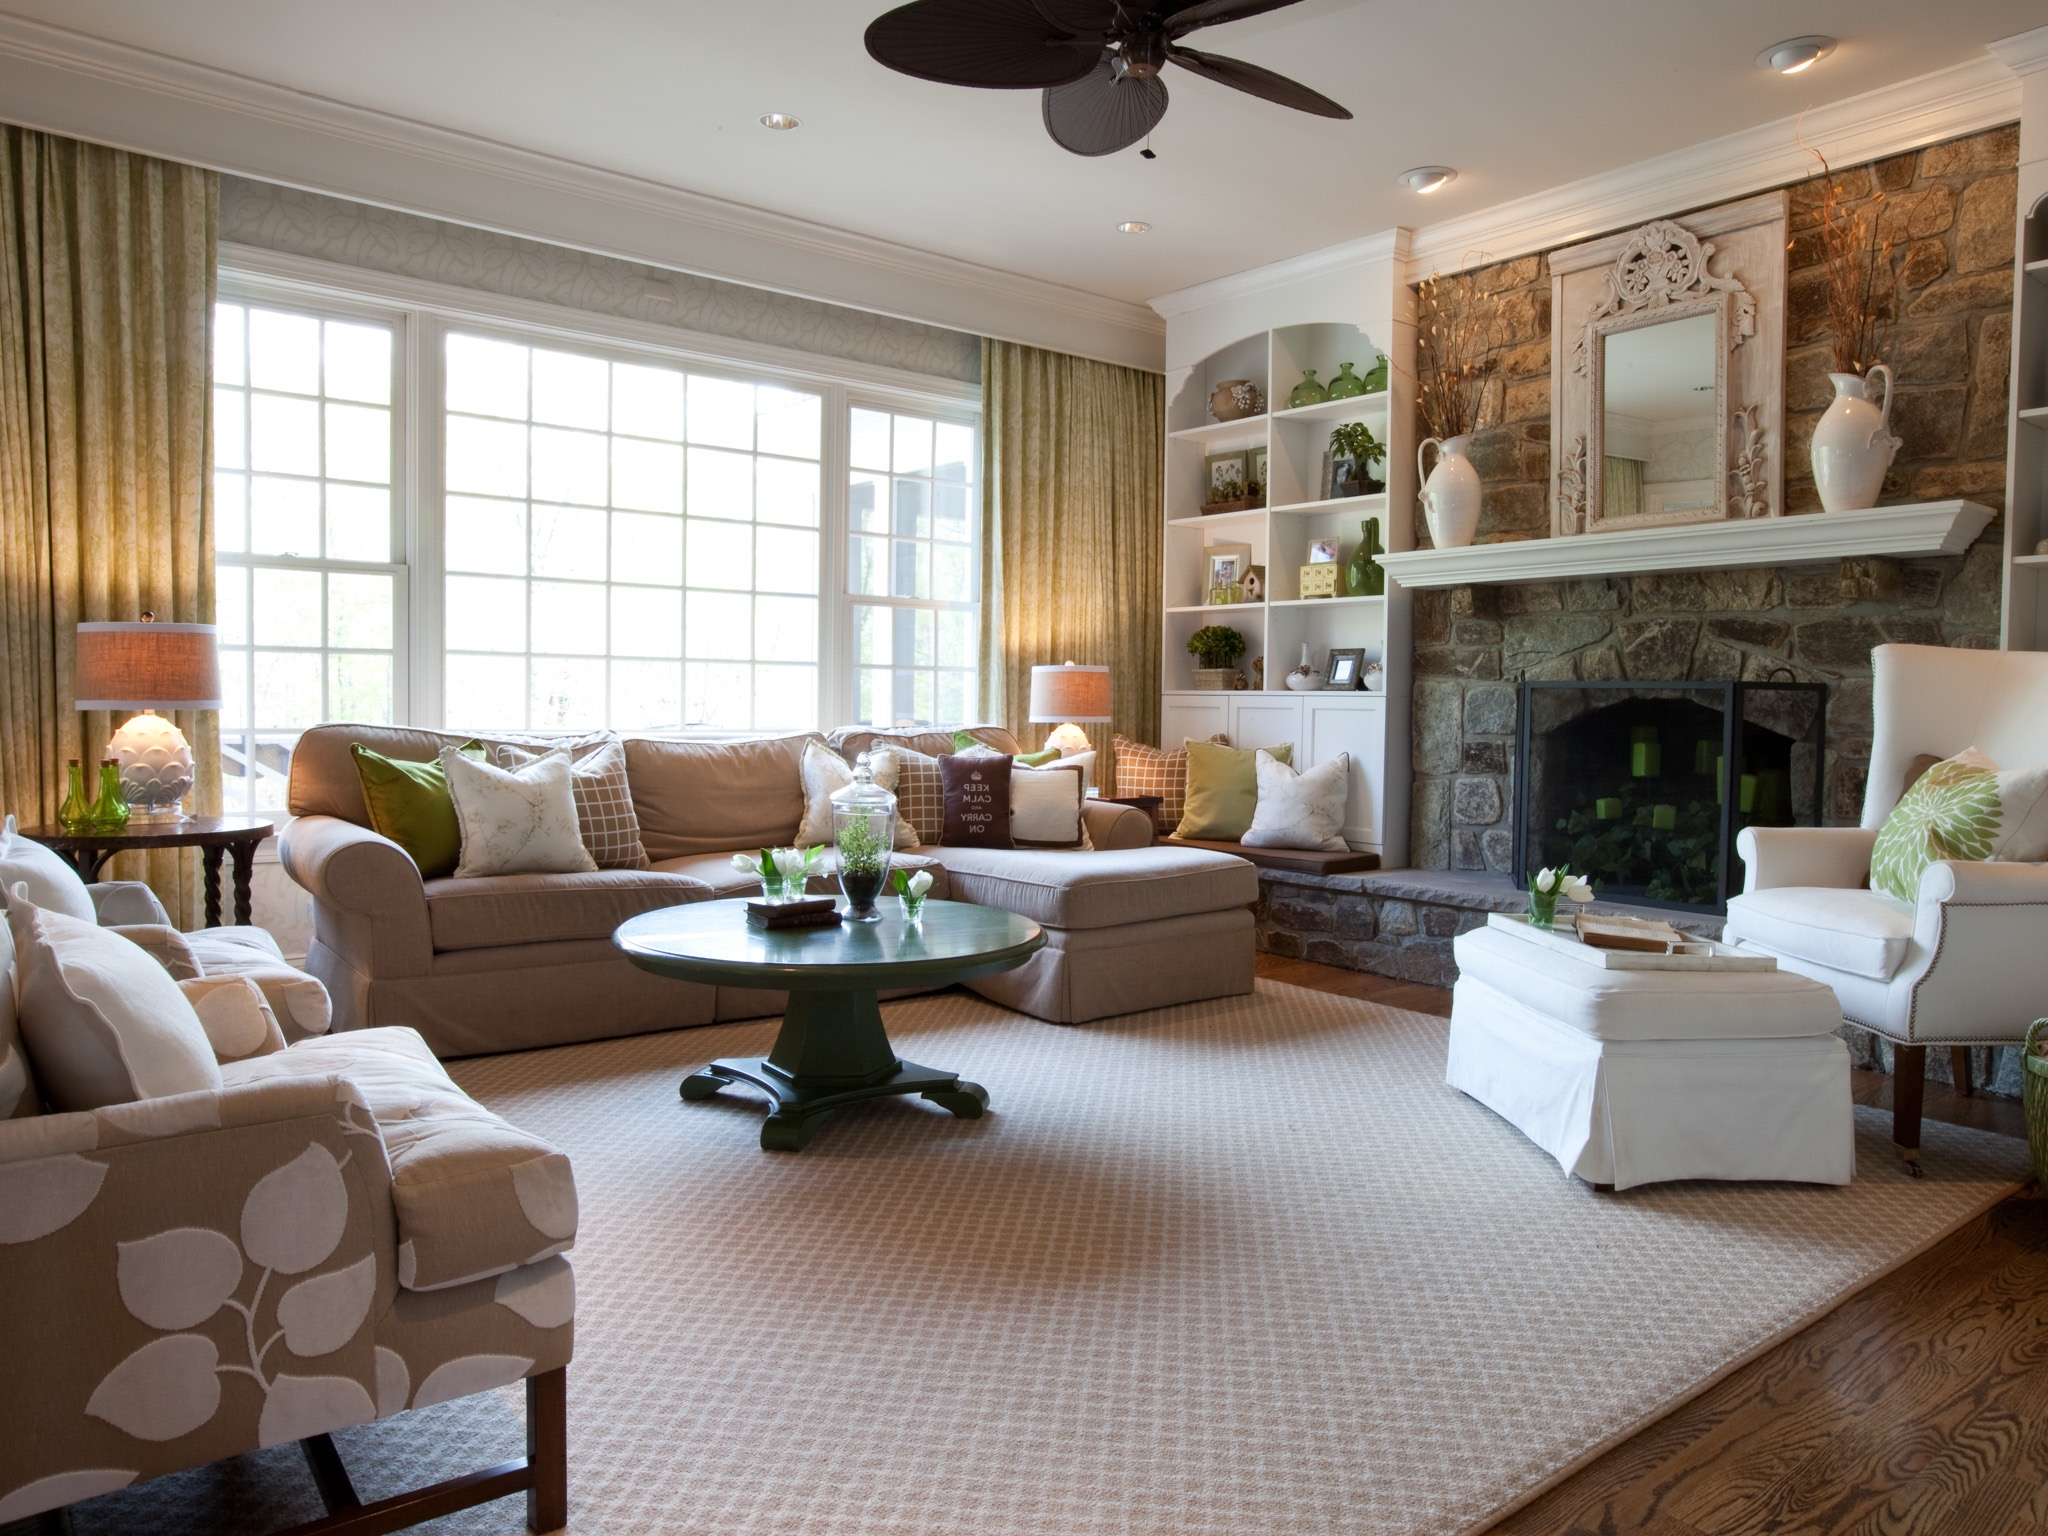 American Living Room in Country Style with Stone Fireplace